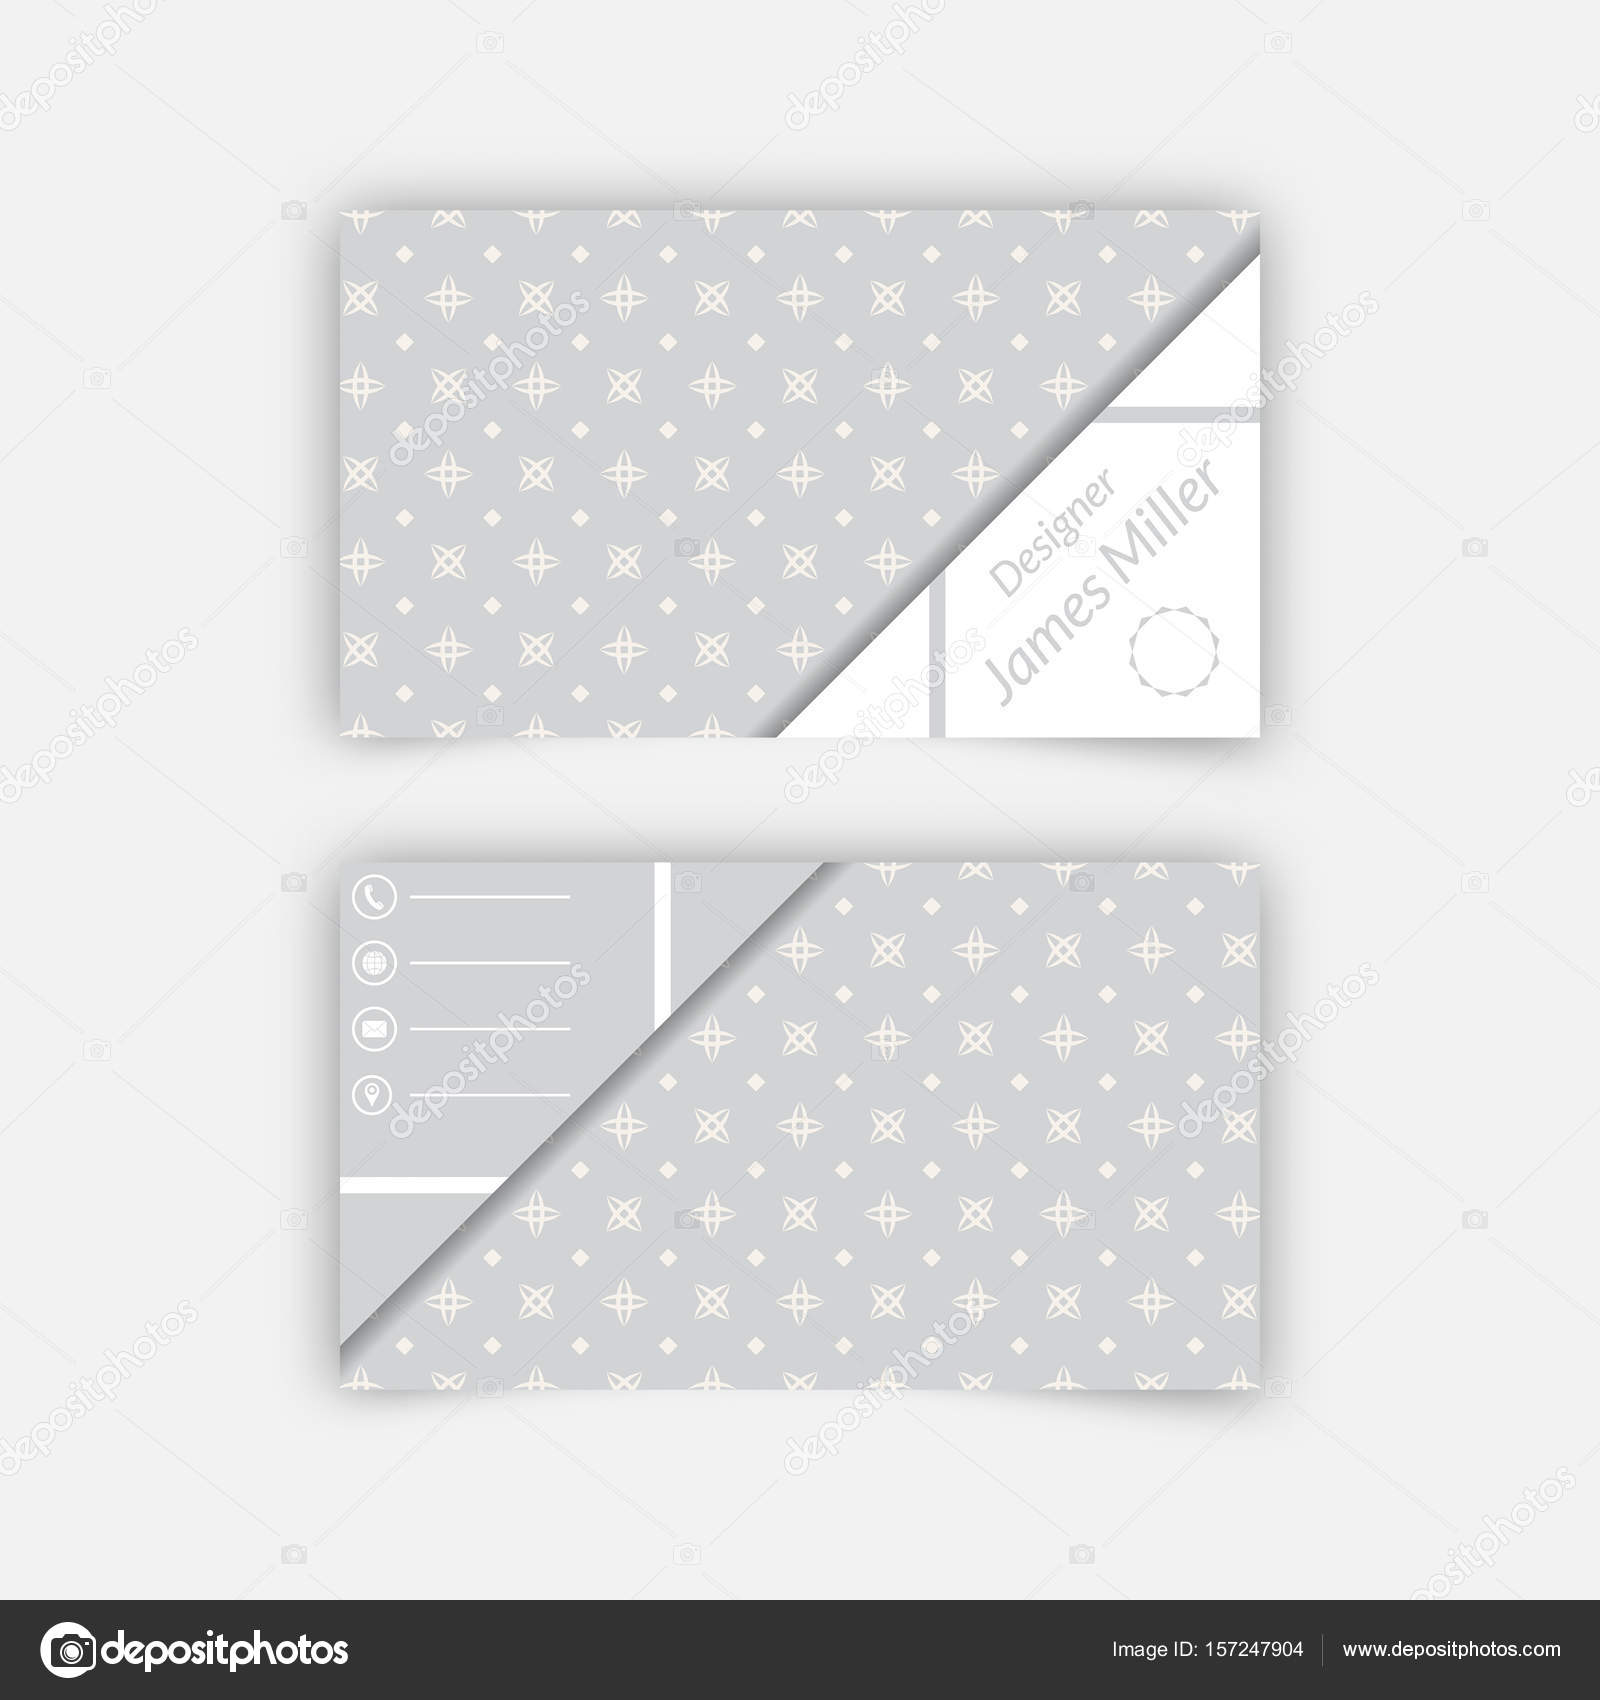 Business card blank template stock vector baretsky 157247904 business card blank template with textured background from stars rhombuses and triangle shape minimal elegant vector design vector by baretsky accmission Gallery